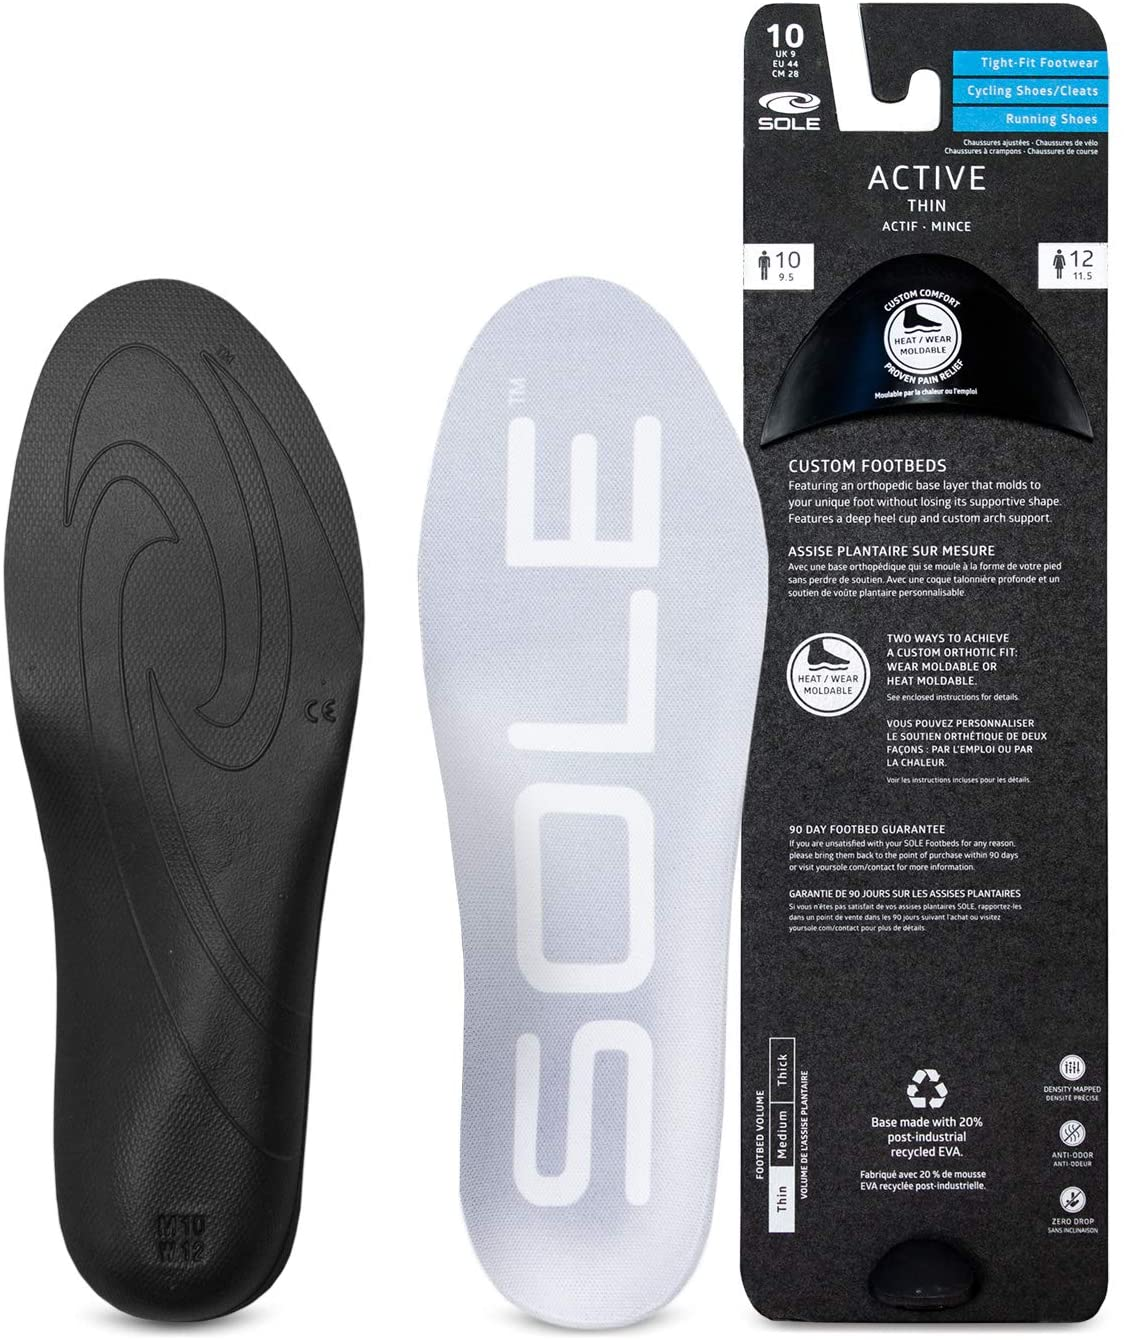 SOLE Active Thin Shoe Insoles - Men's Size 13/Women's Size 15